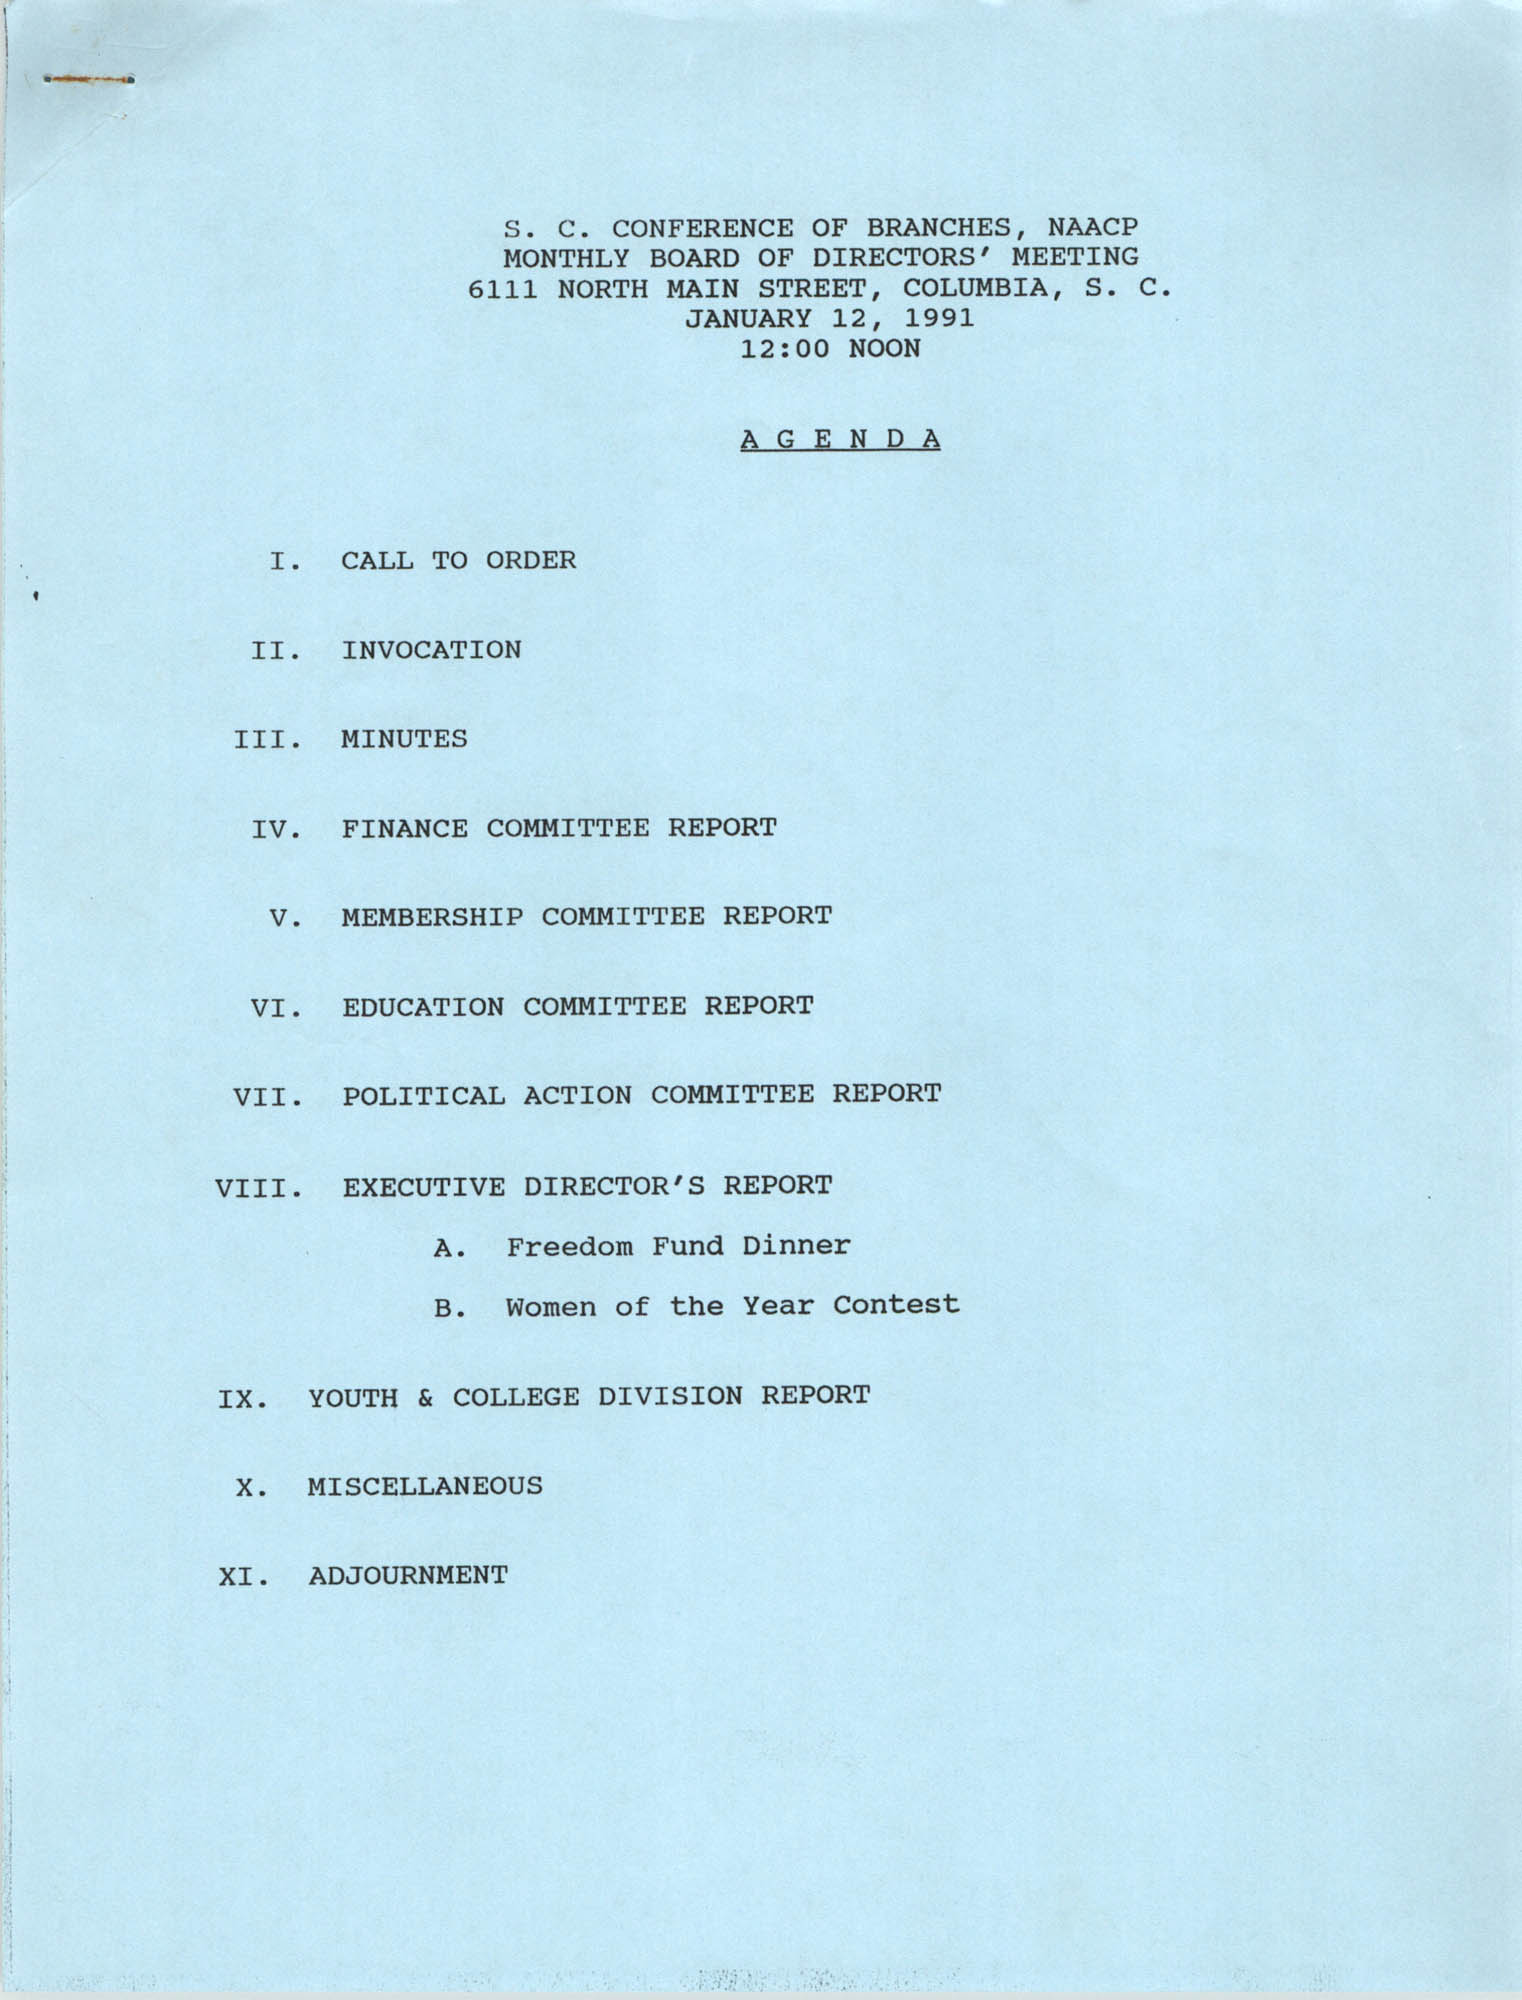 Agenda, South Carolina Conference of Branches of the NAACP, January 12, 1991